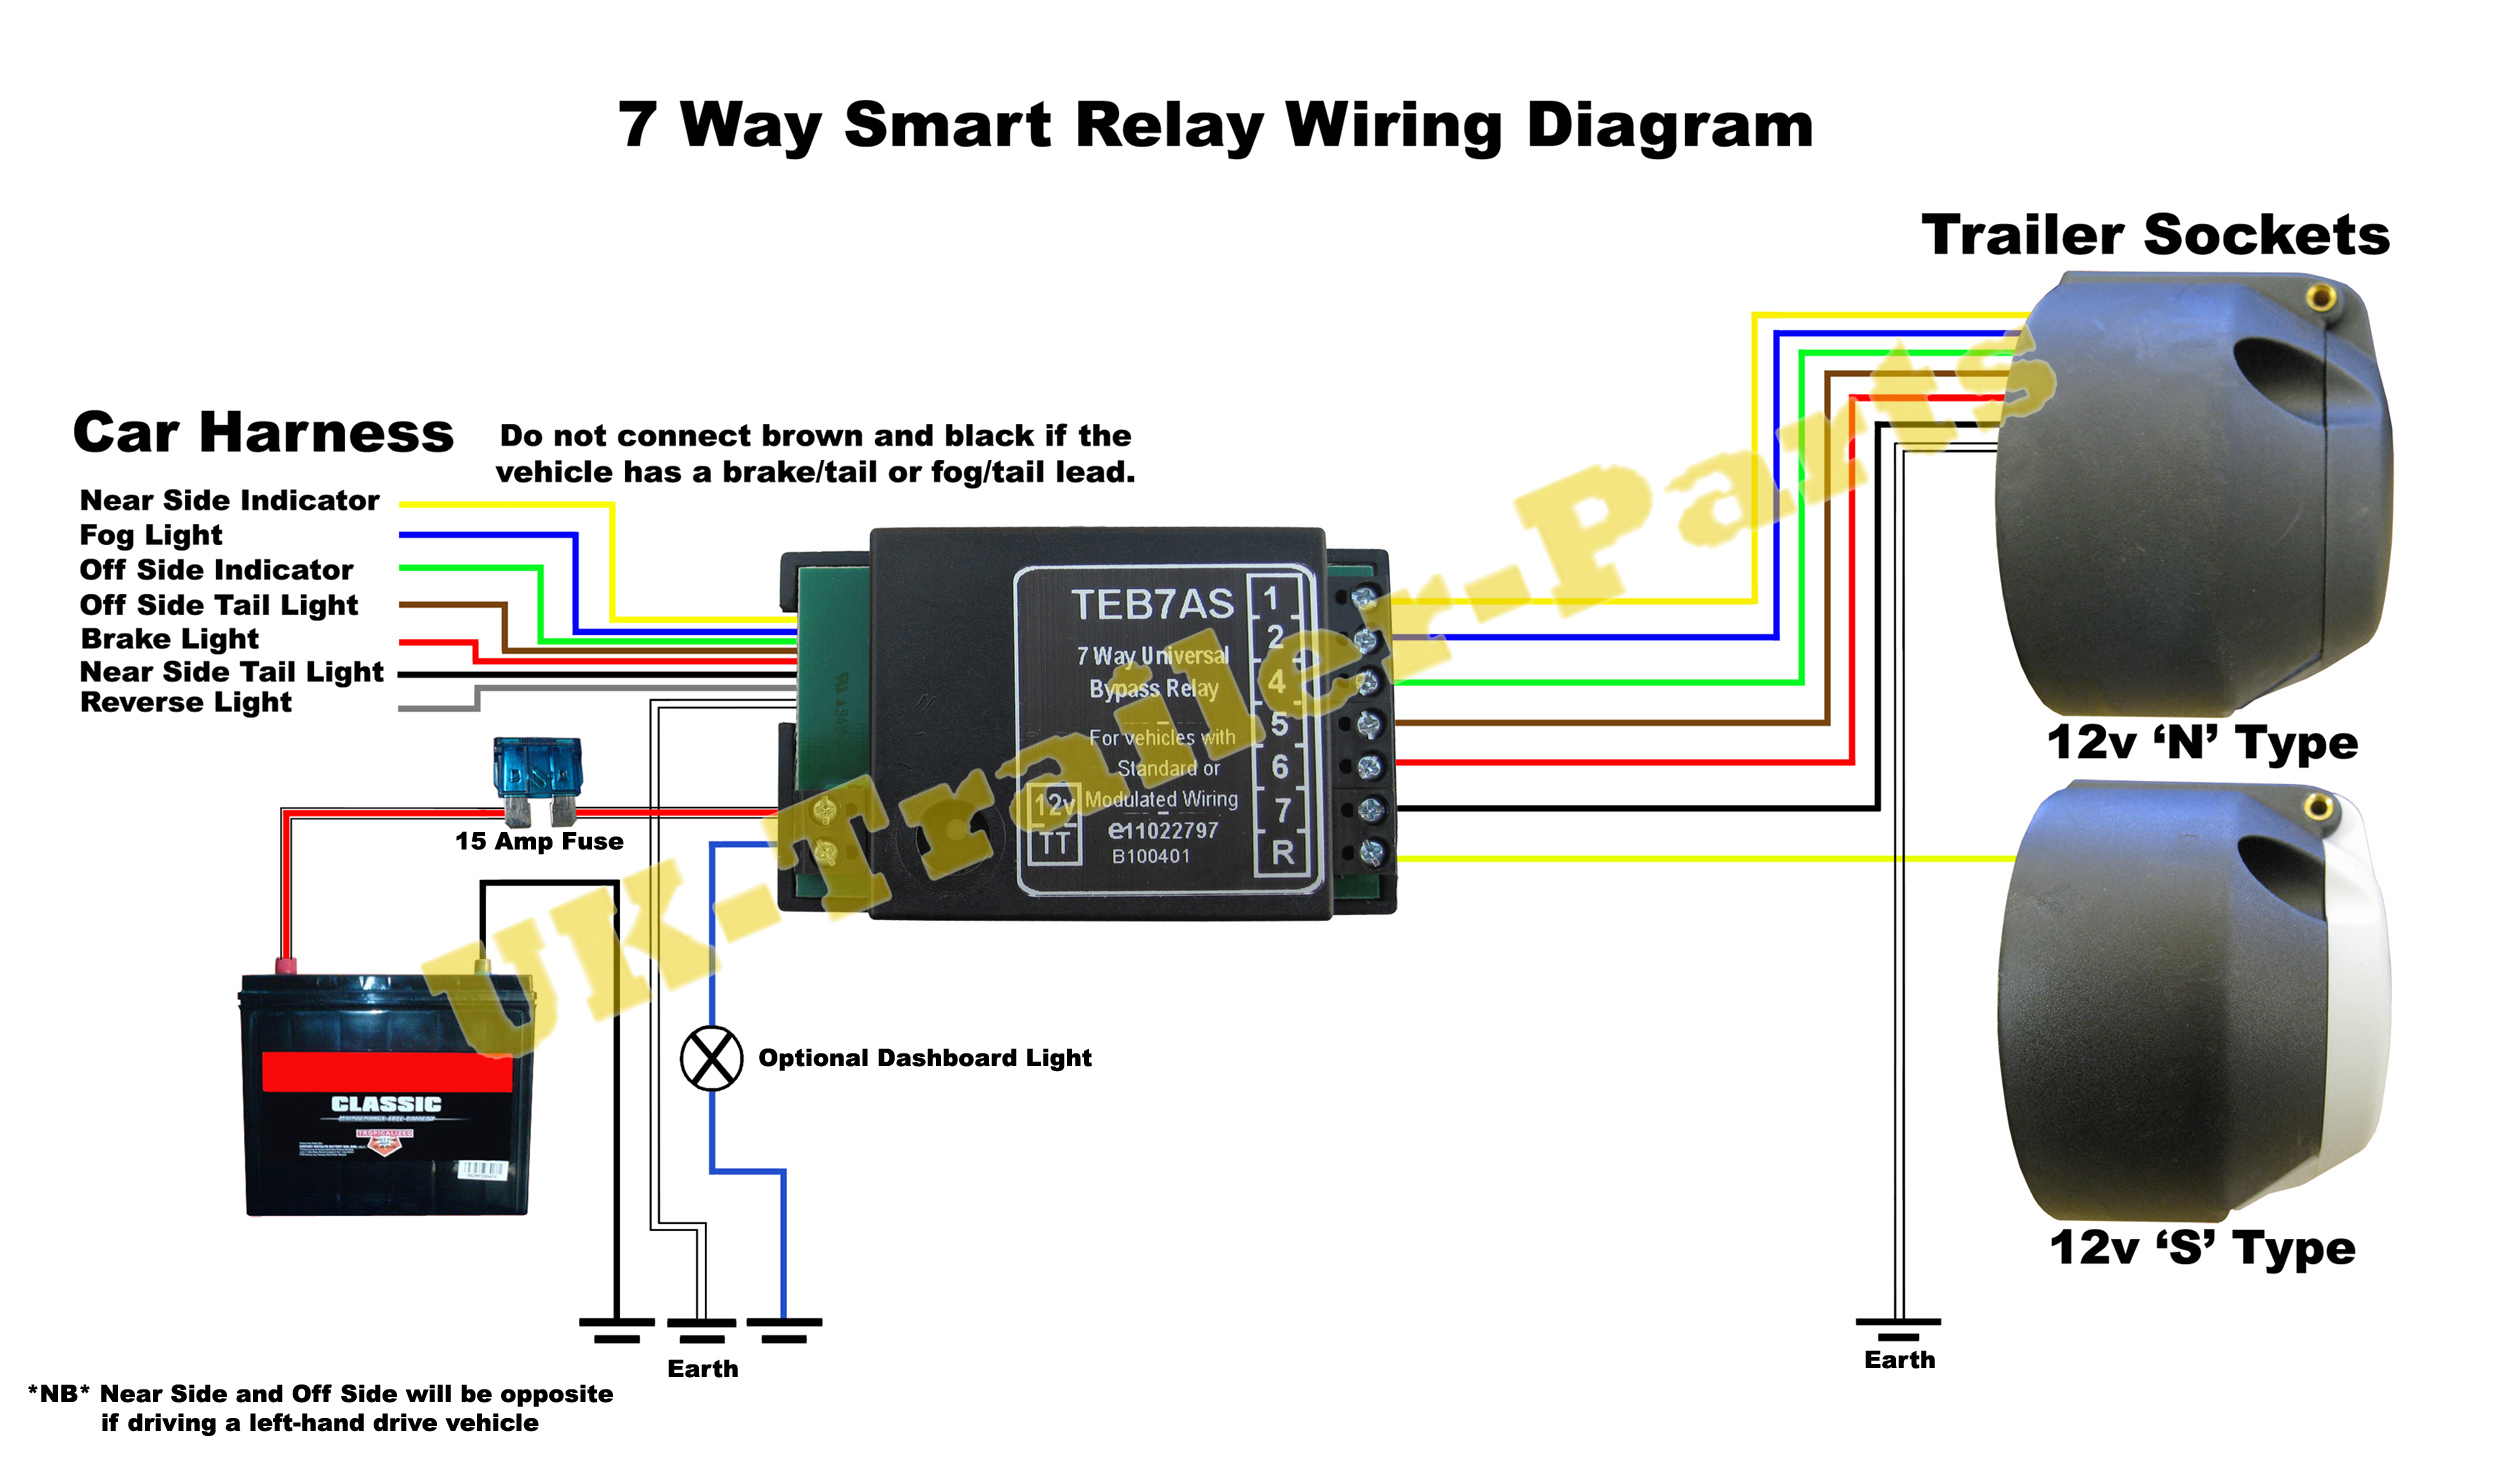 smart relay wiring diagram2 7 way universal bypass relay wiring diagram uk trailer parts vauxhall vectra towbar wiring diagram at crackthecode.co